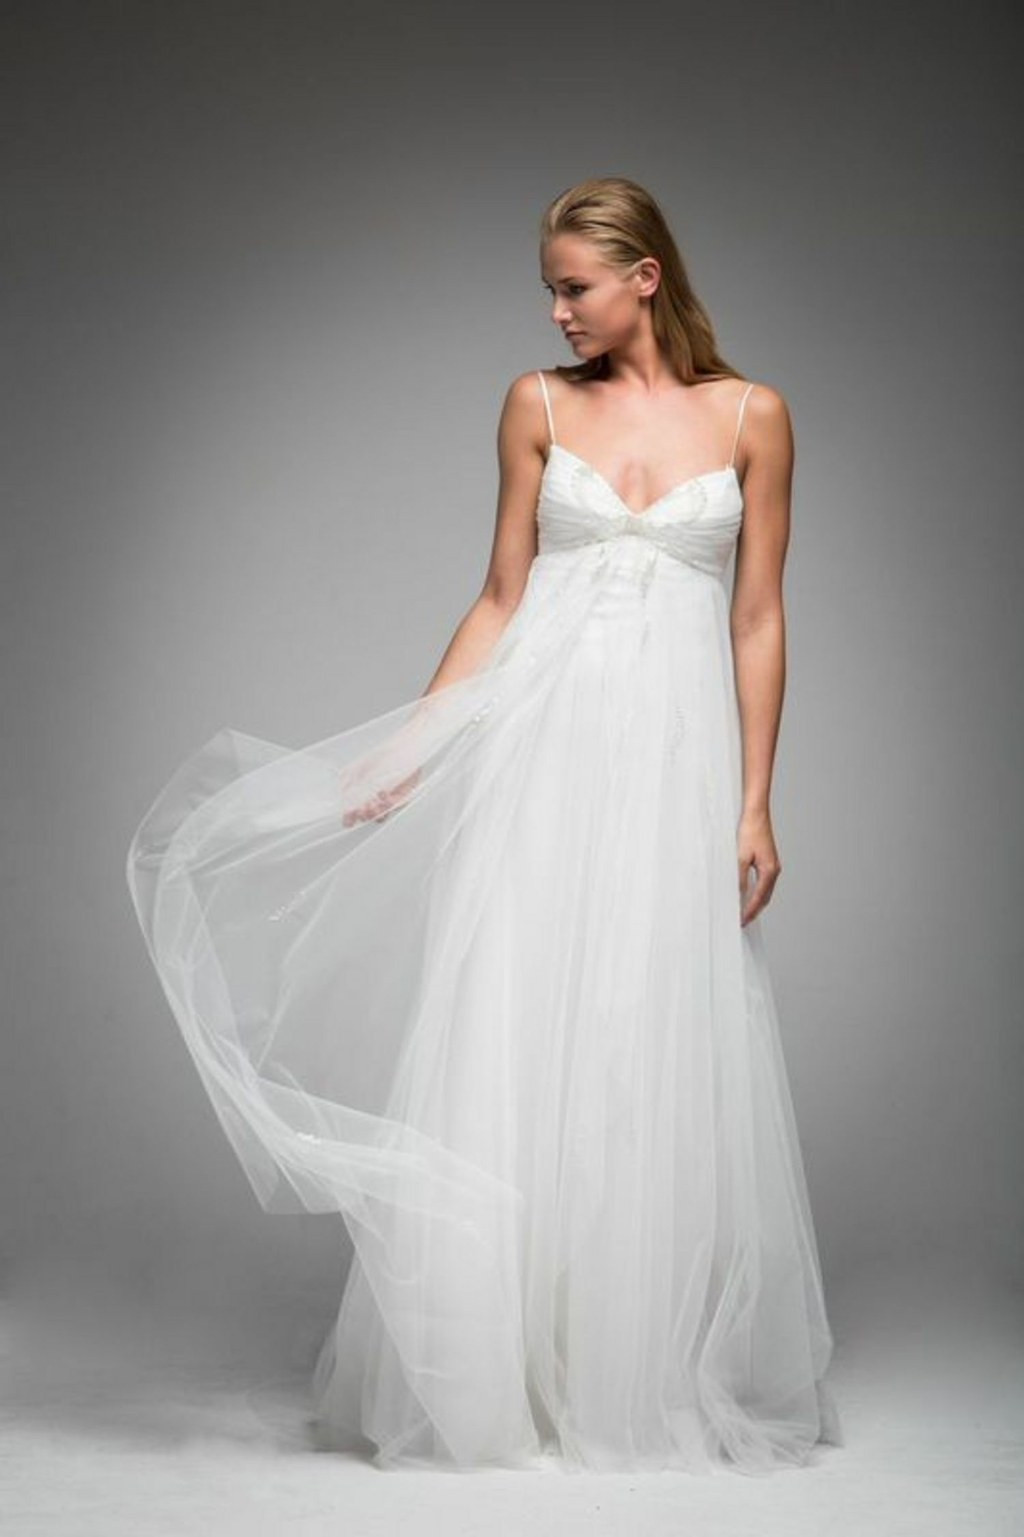 Spaghetti Strap Wedding Gown  Spaghetti Strap Wedding Dresses New Spaghetti Strap